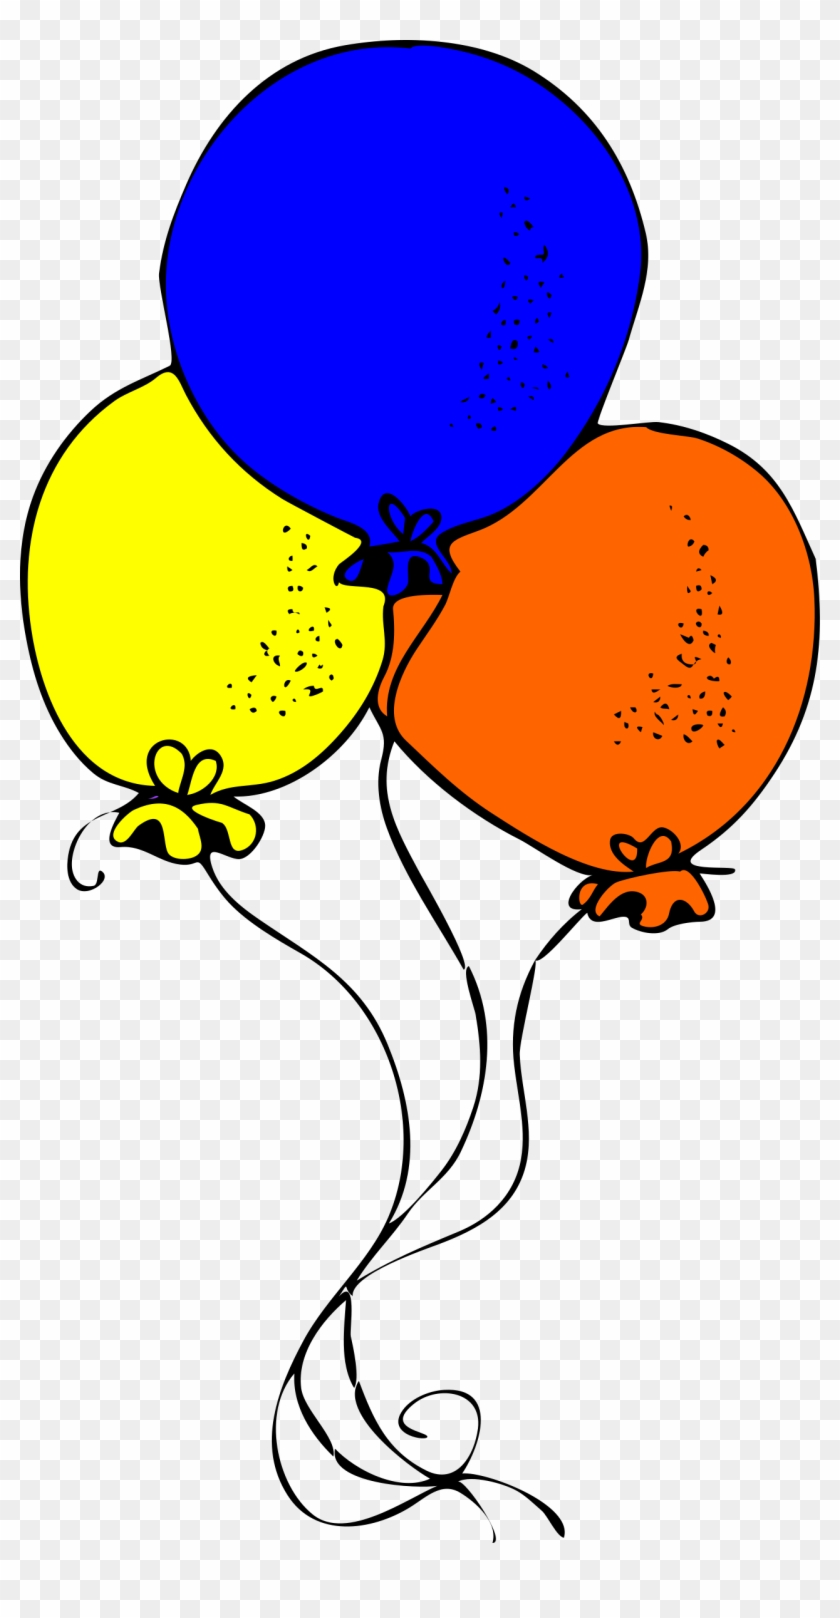 Big Image - Balloons Blue Orange And Yellow #443911